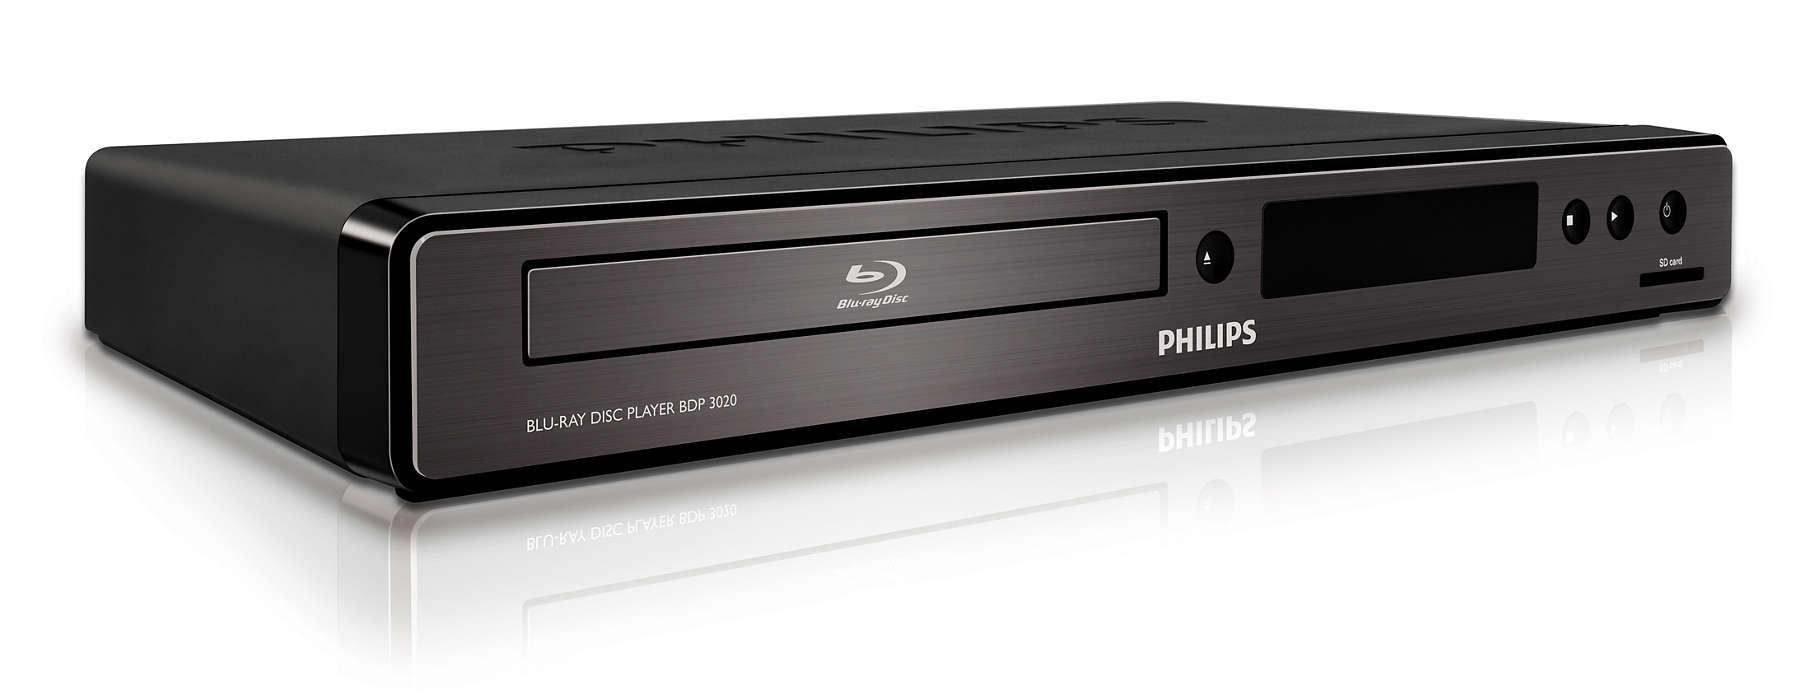 Blu-ray Disc playback for high definition video